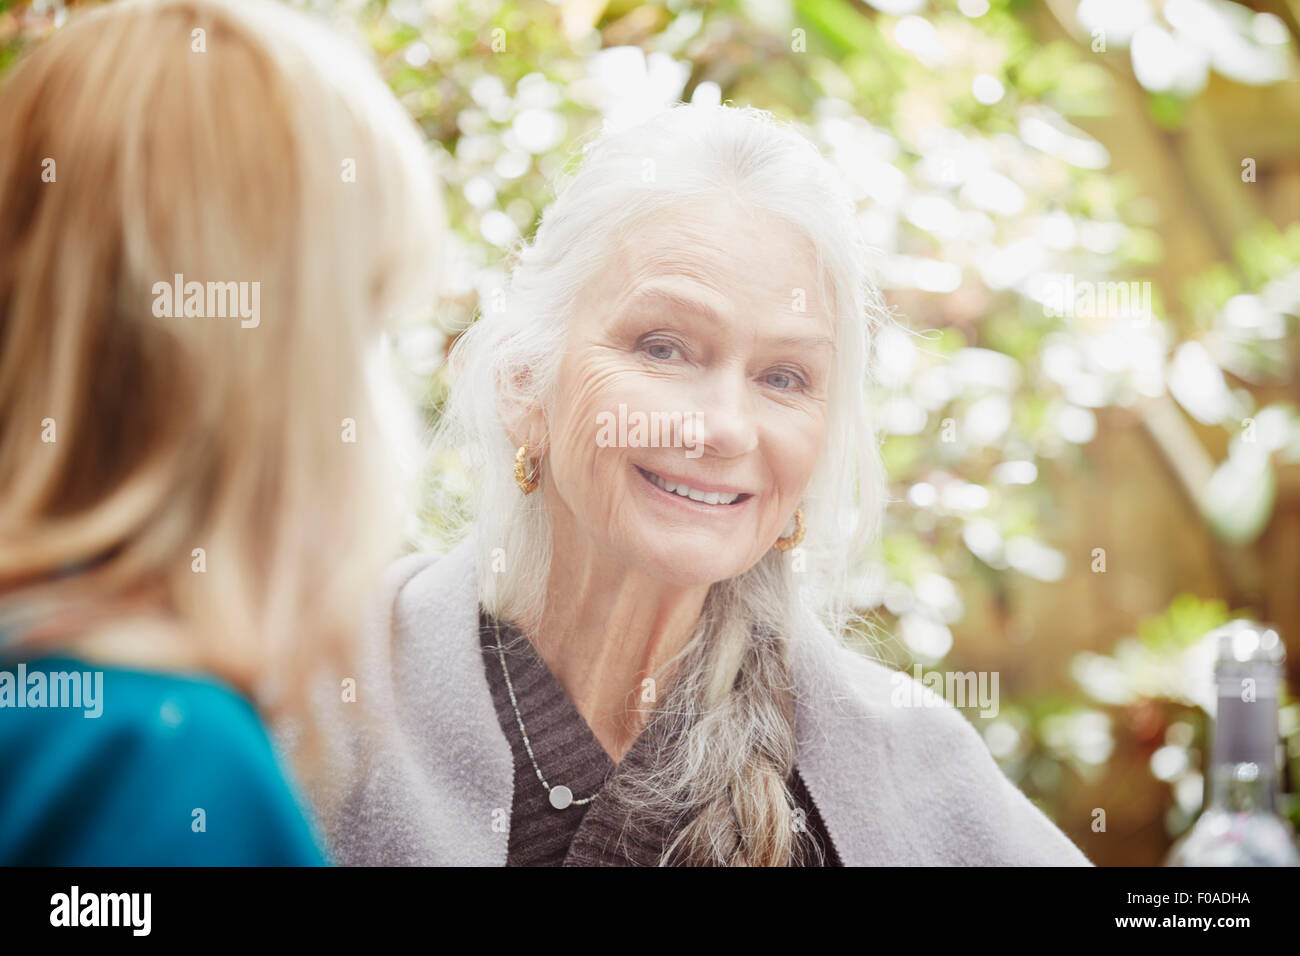 Senior woman with grey hair in garden, portrait - Stock Image